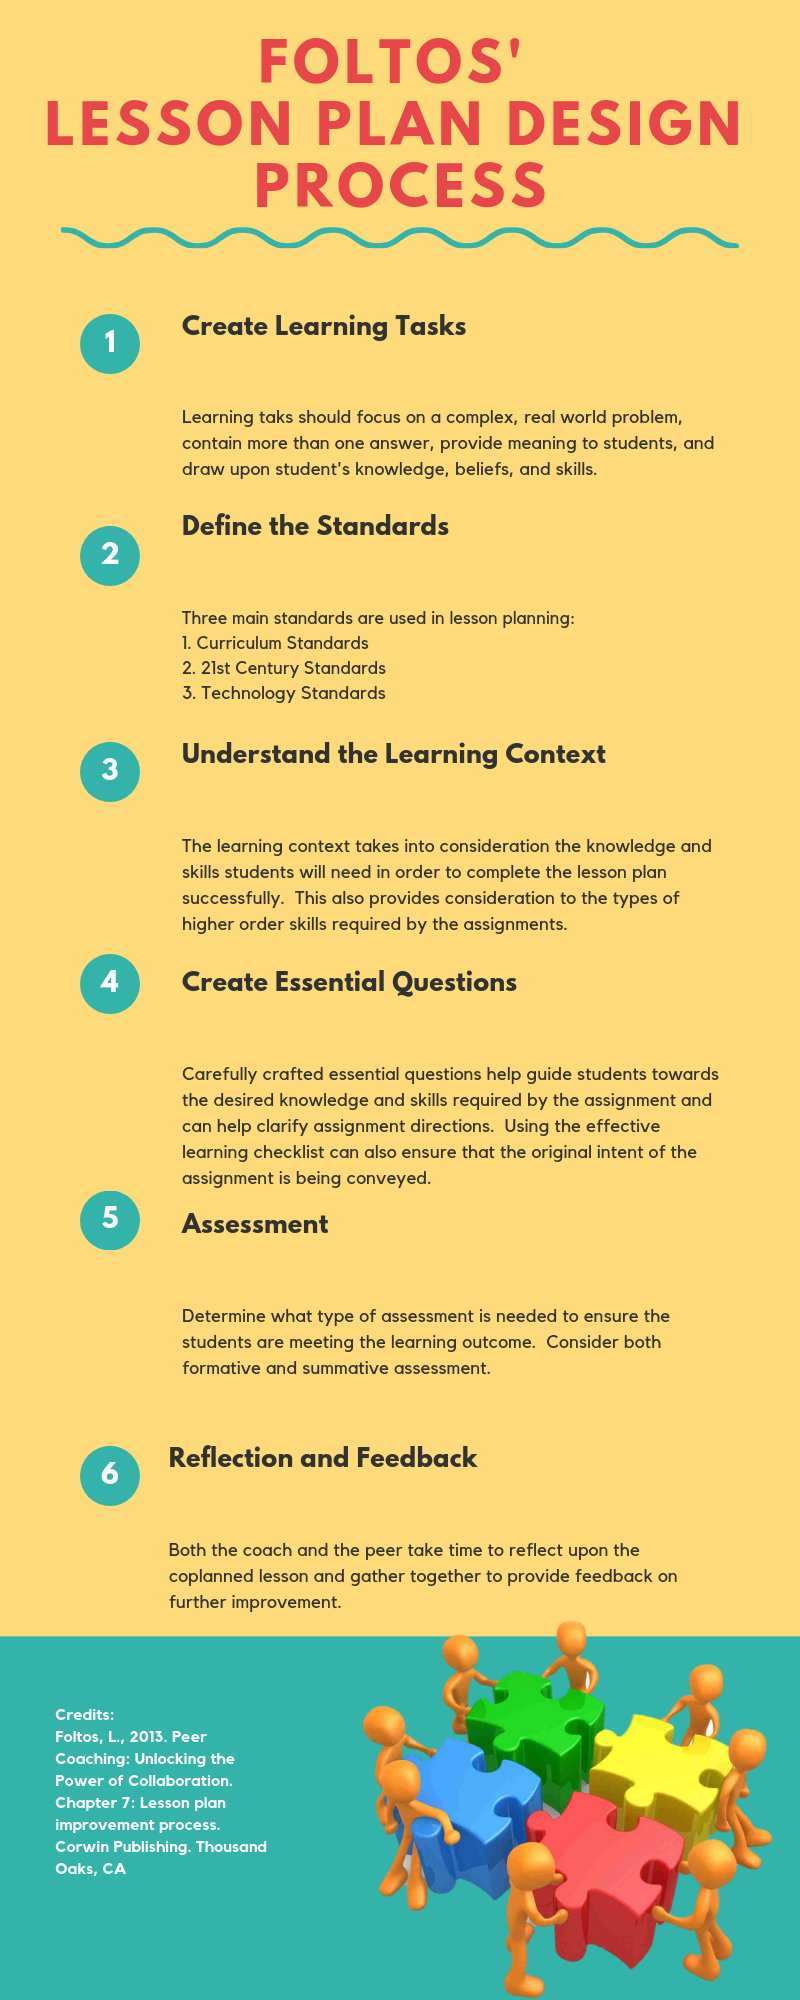 infographic on the lesson plan improvement process.